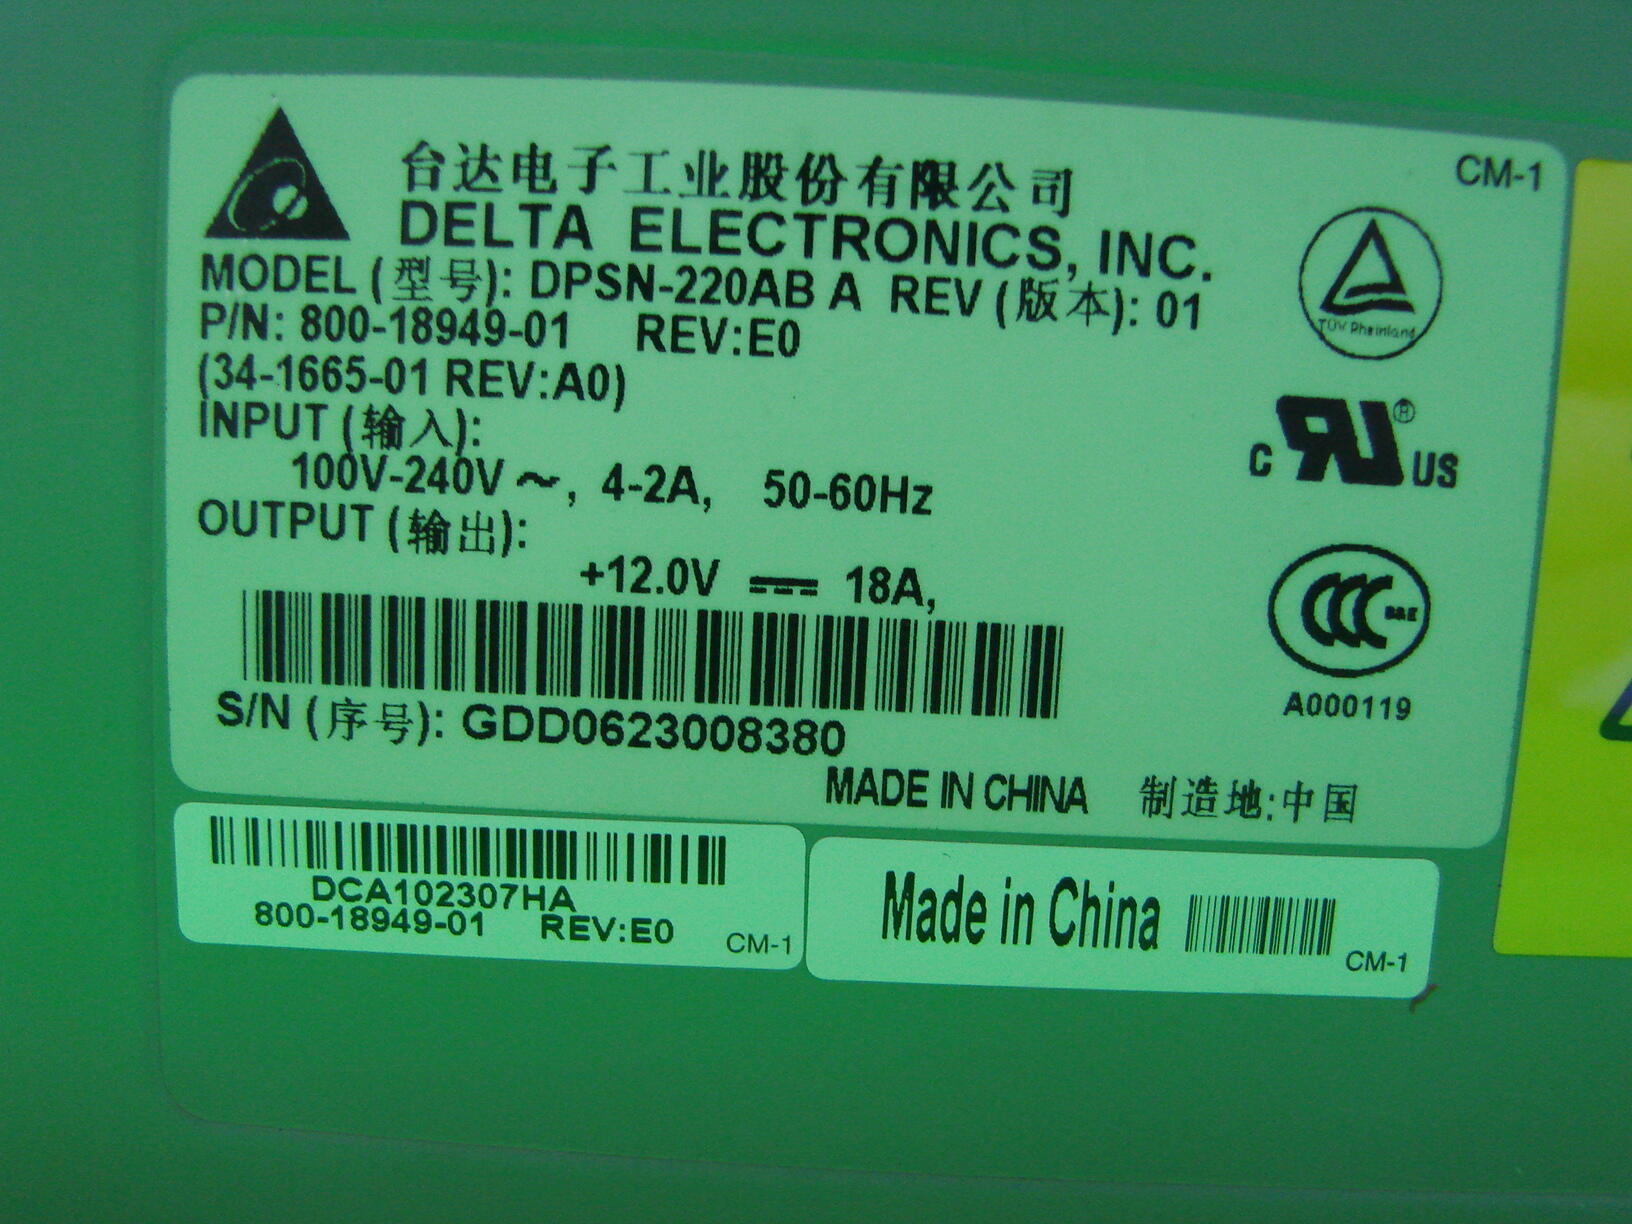 ideal electronics corporation Start studying international marketing quiz one ideal electronics is a leading manufacturer of consumer electronics in korea the company has also ventured.